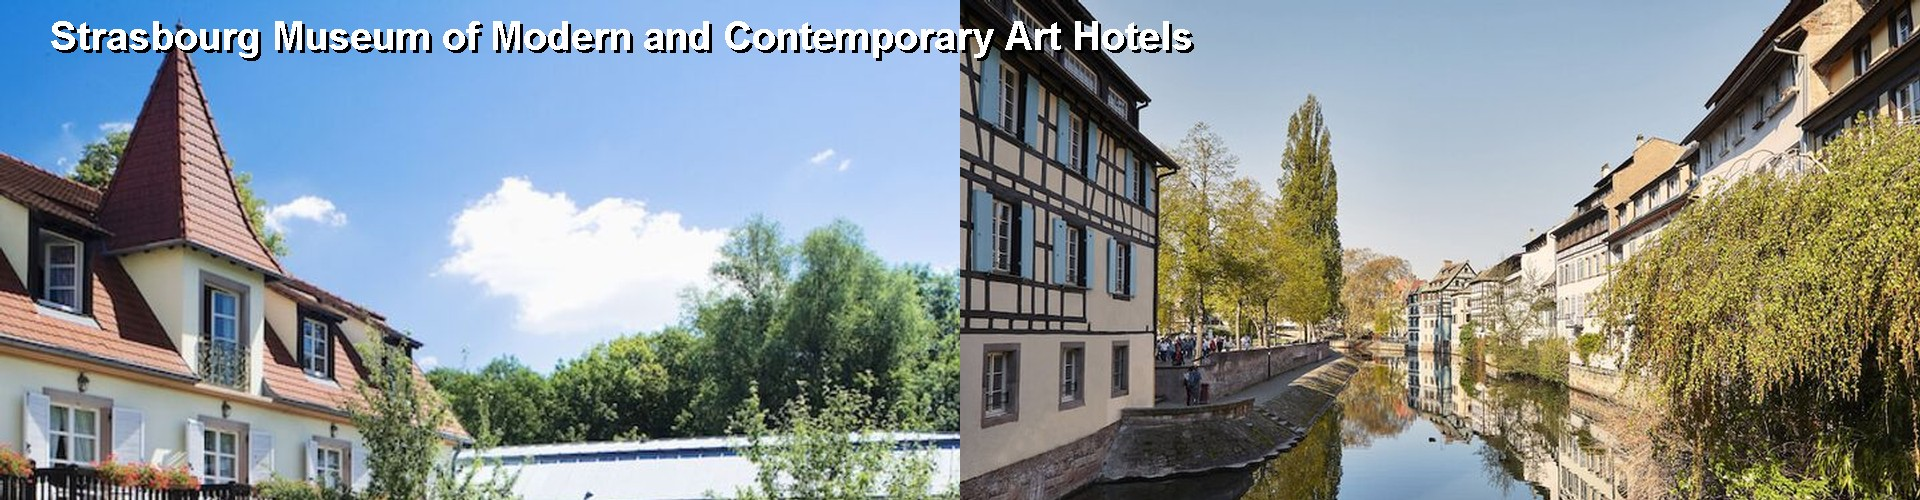 5 Best Hotels near Strasbourg Museum of Modern and Contemporary Art